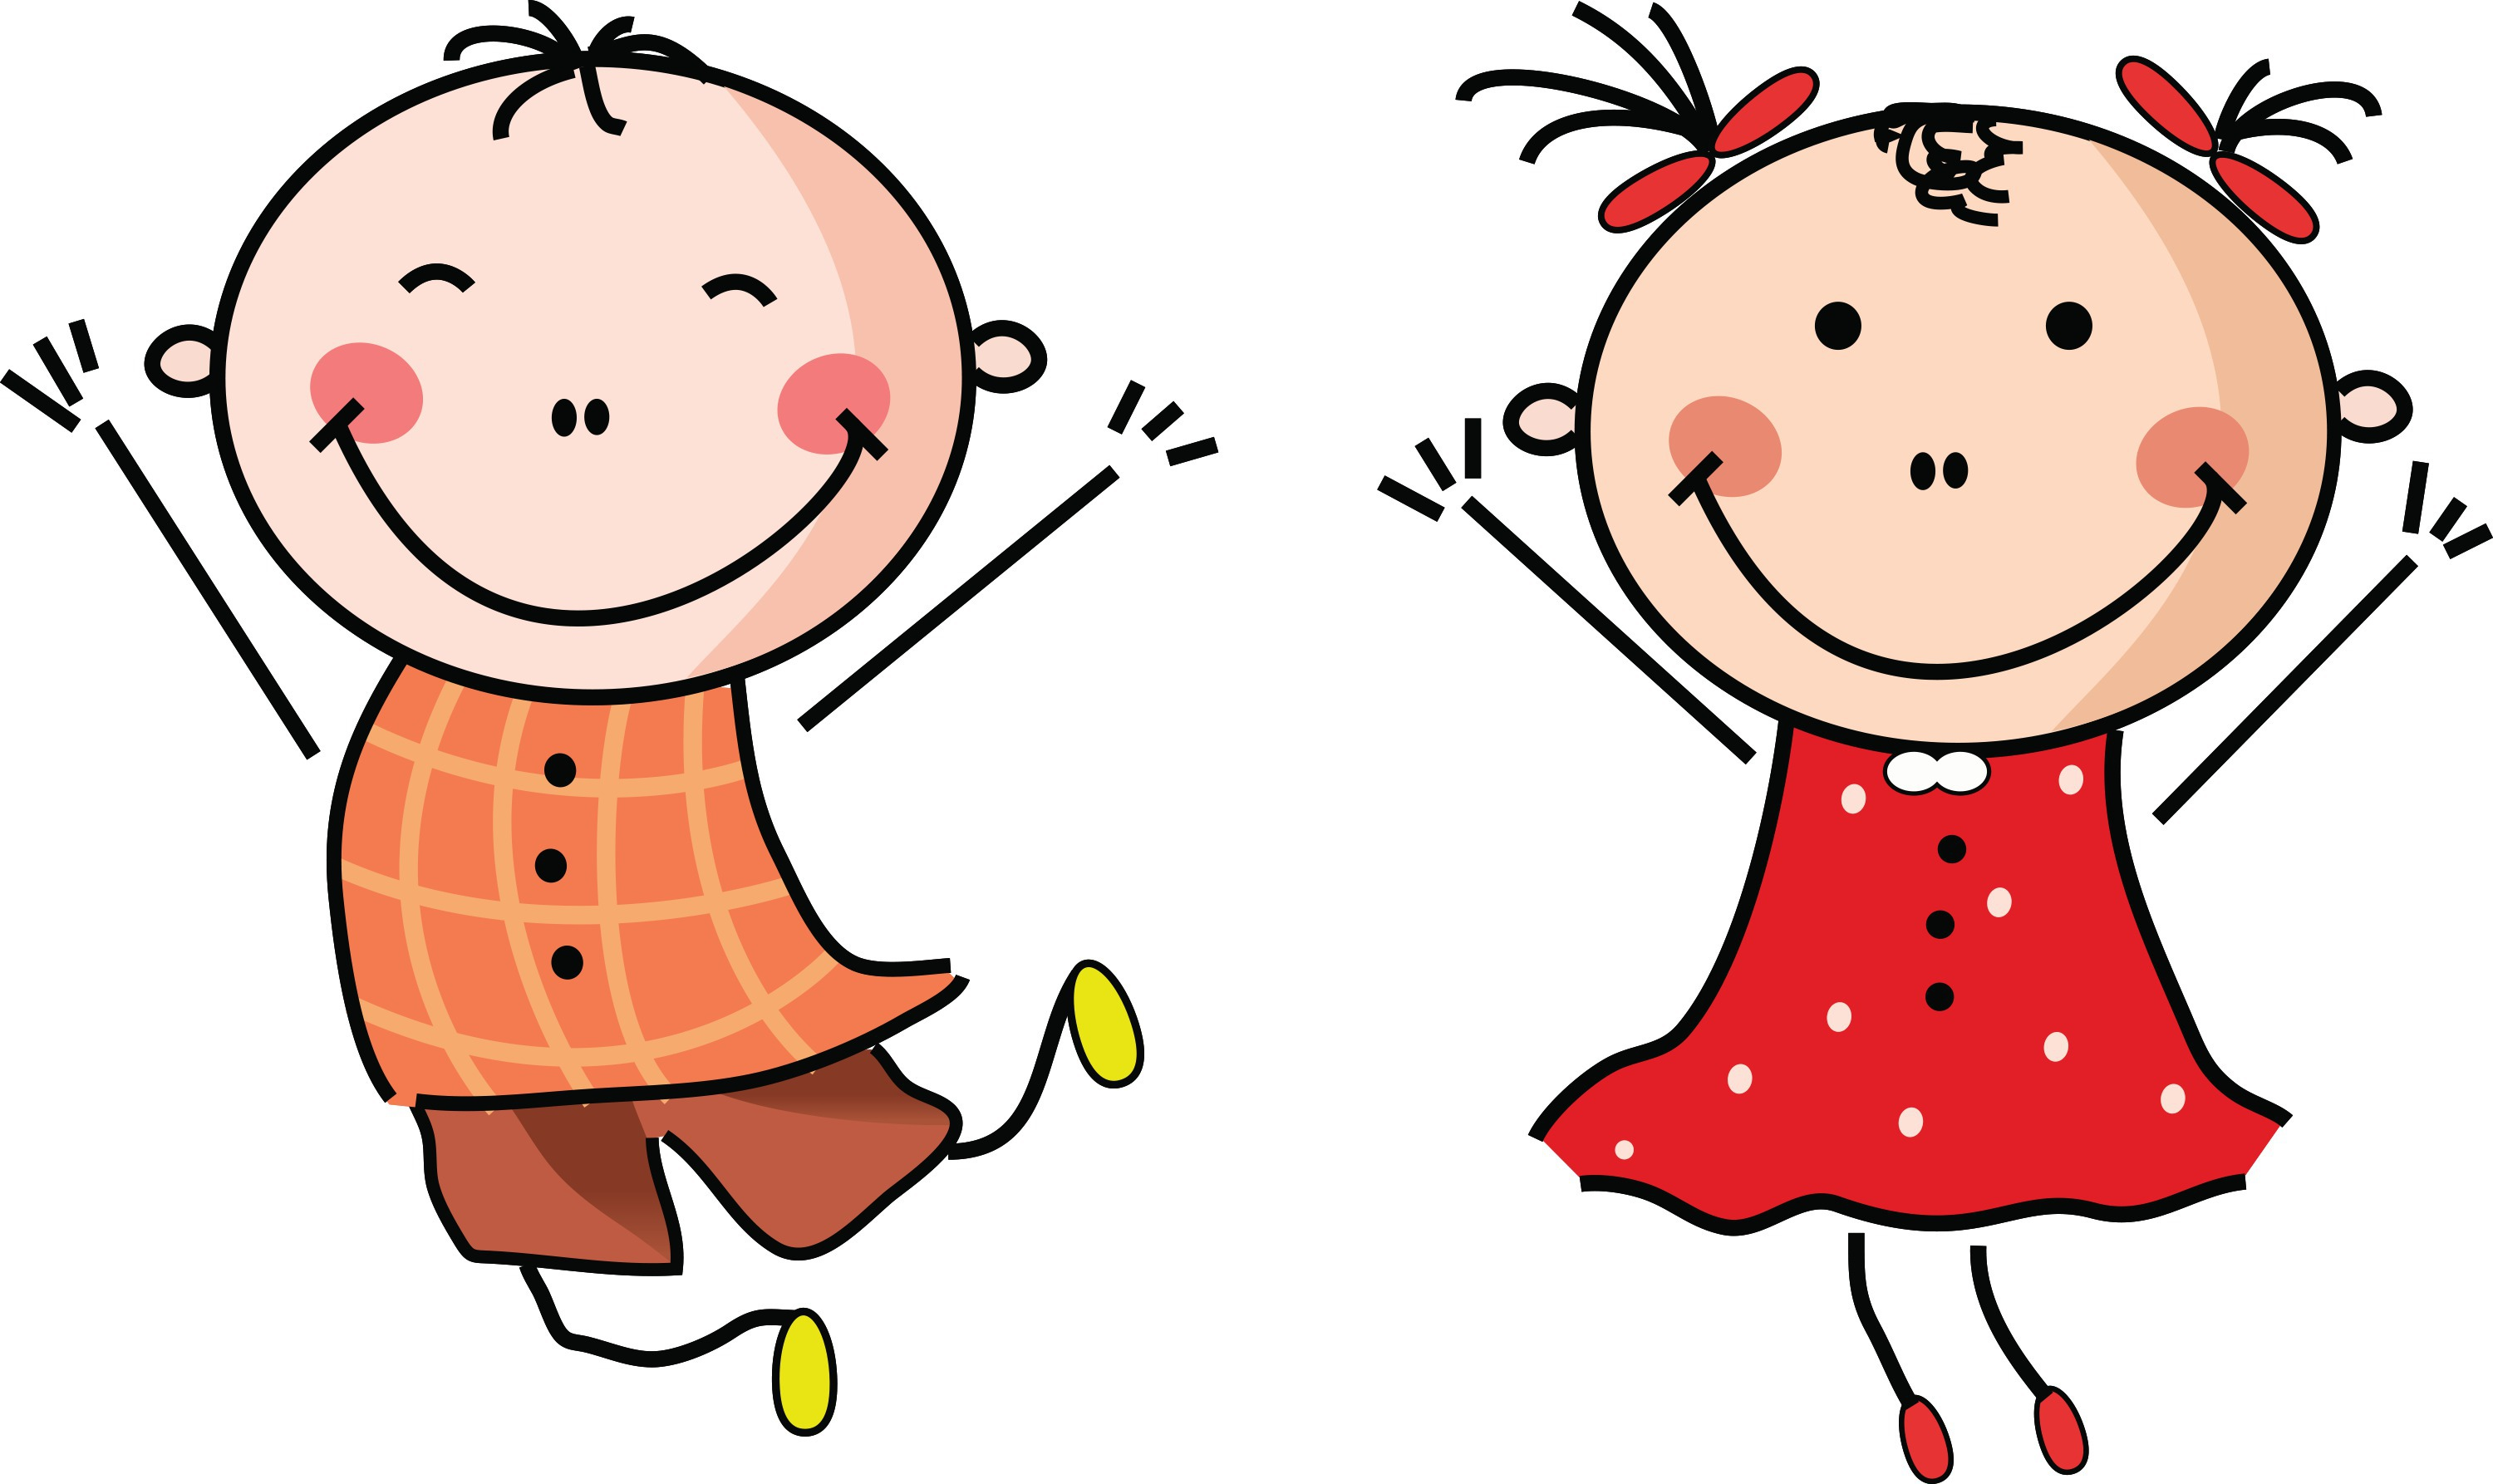 Happy Child Clipart at GetDrawings.com.